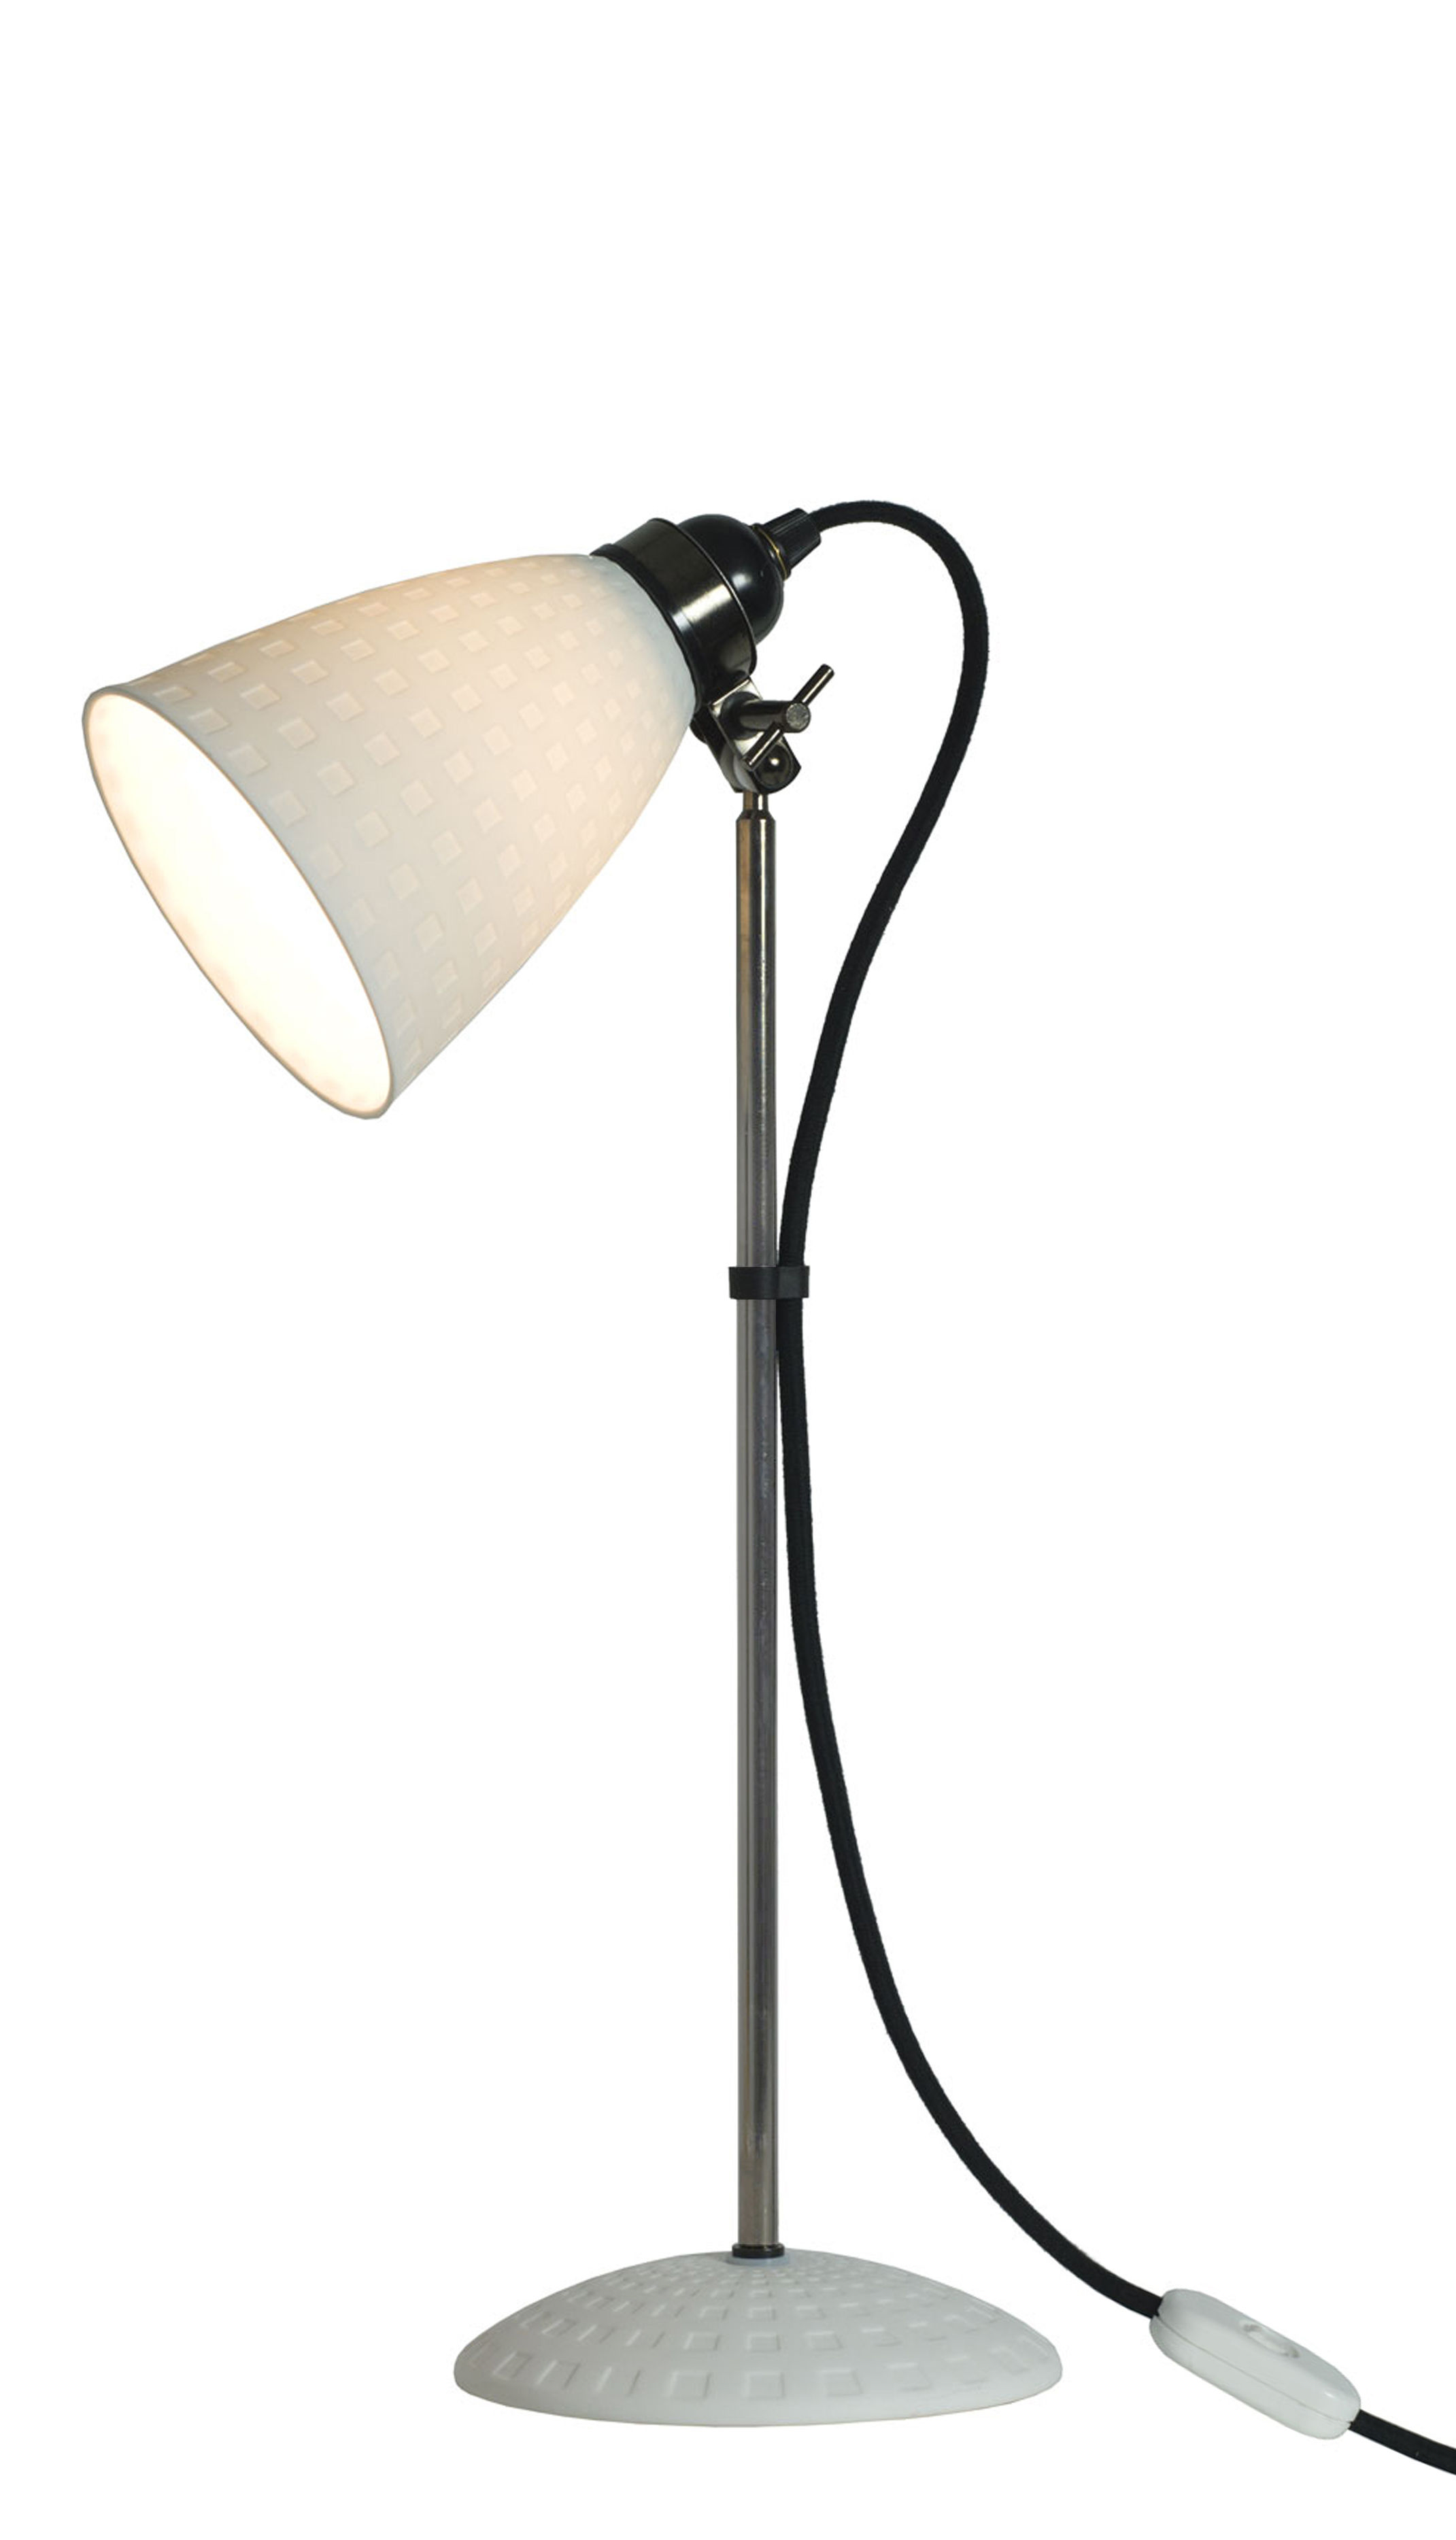 Lighting - Table Lamps - Hector 21 Table lamp - H 57 cm - Bone China - Adjustable by Original BTC - Natural white - China, Chromed metal